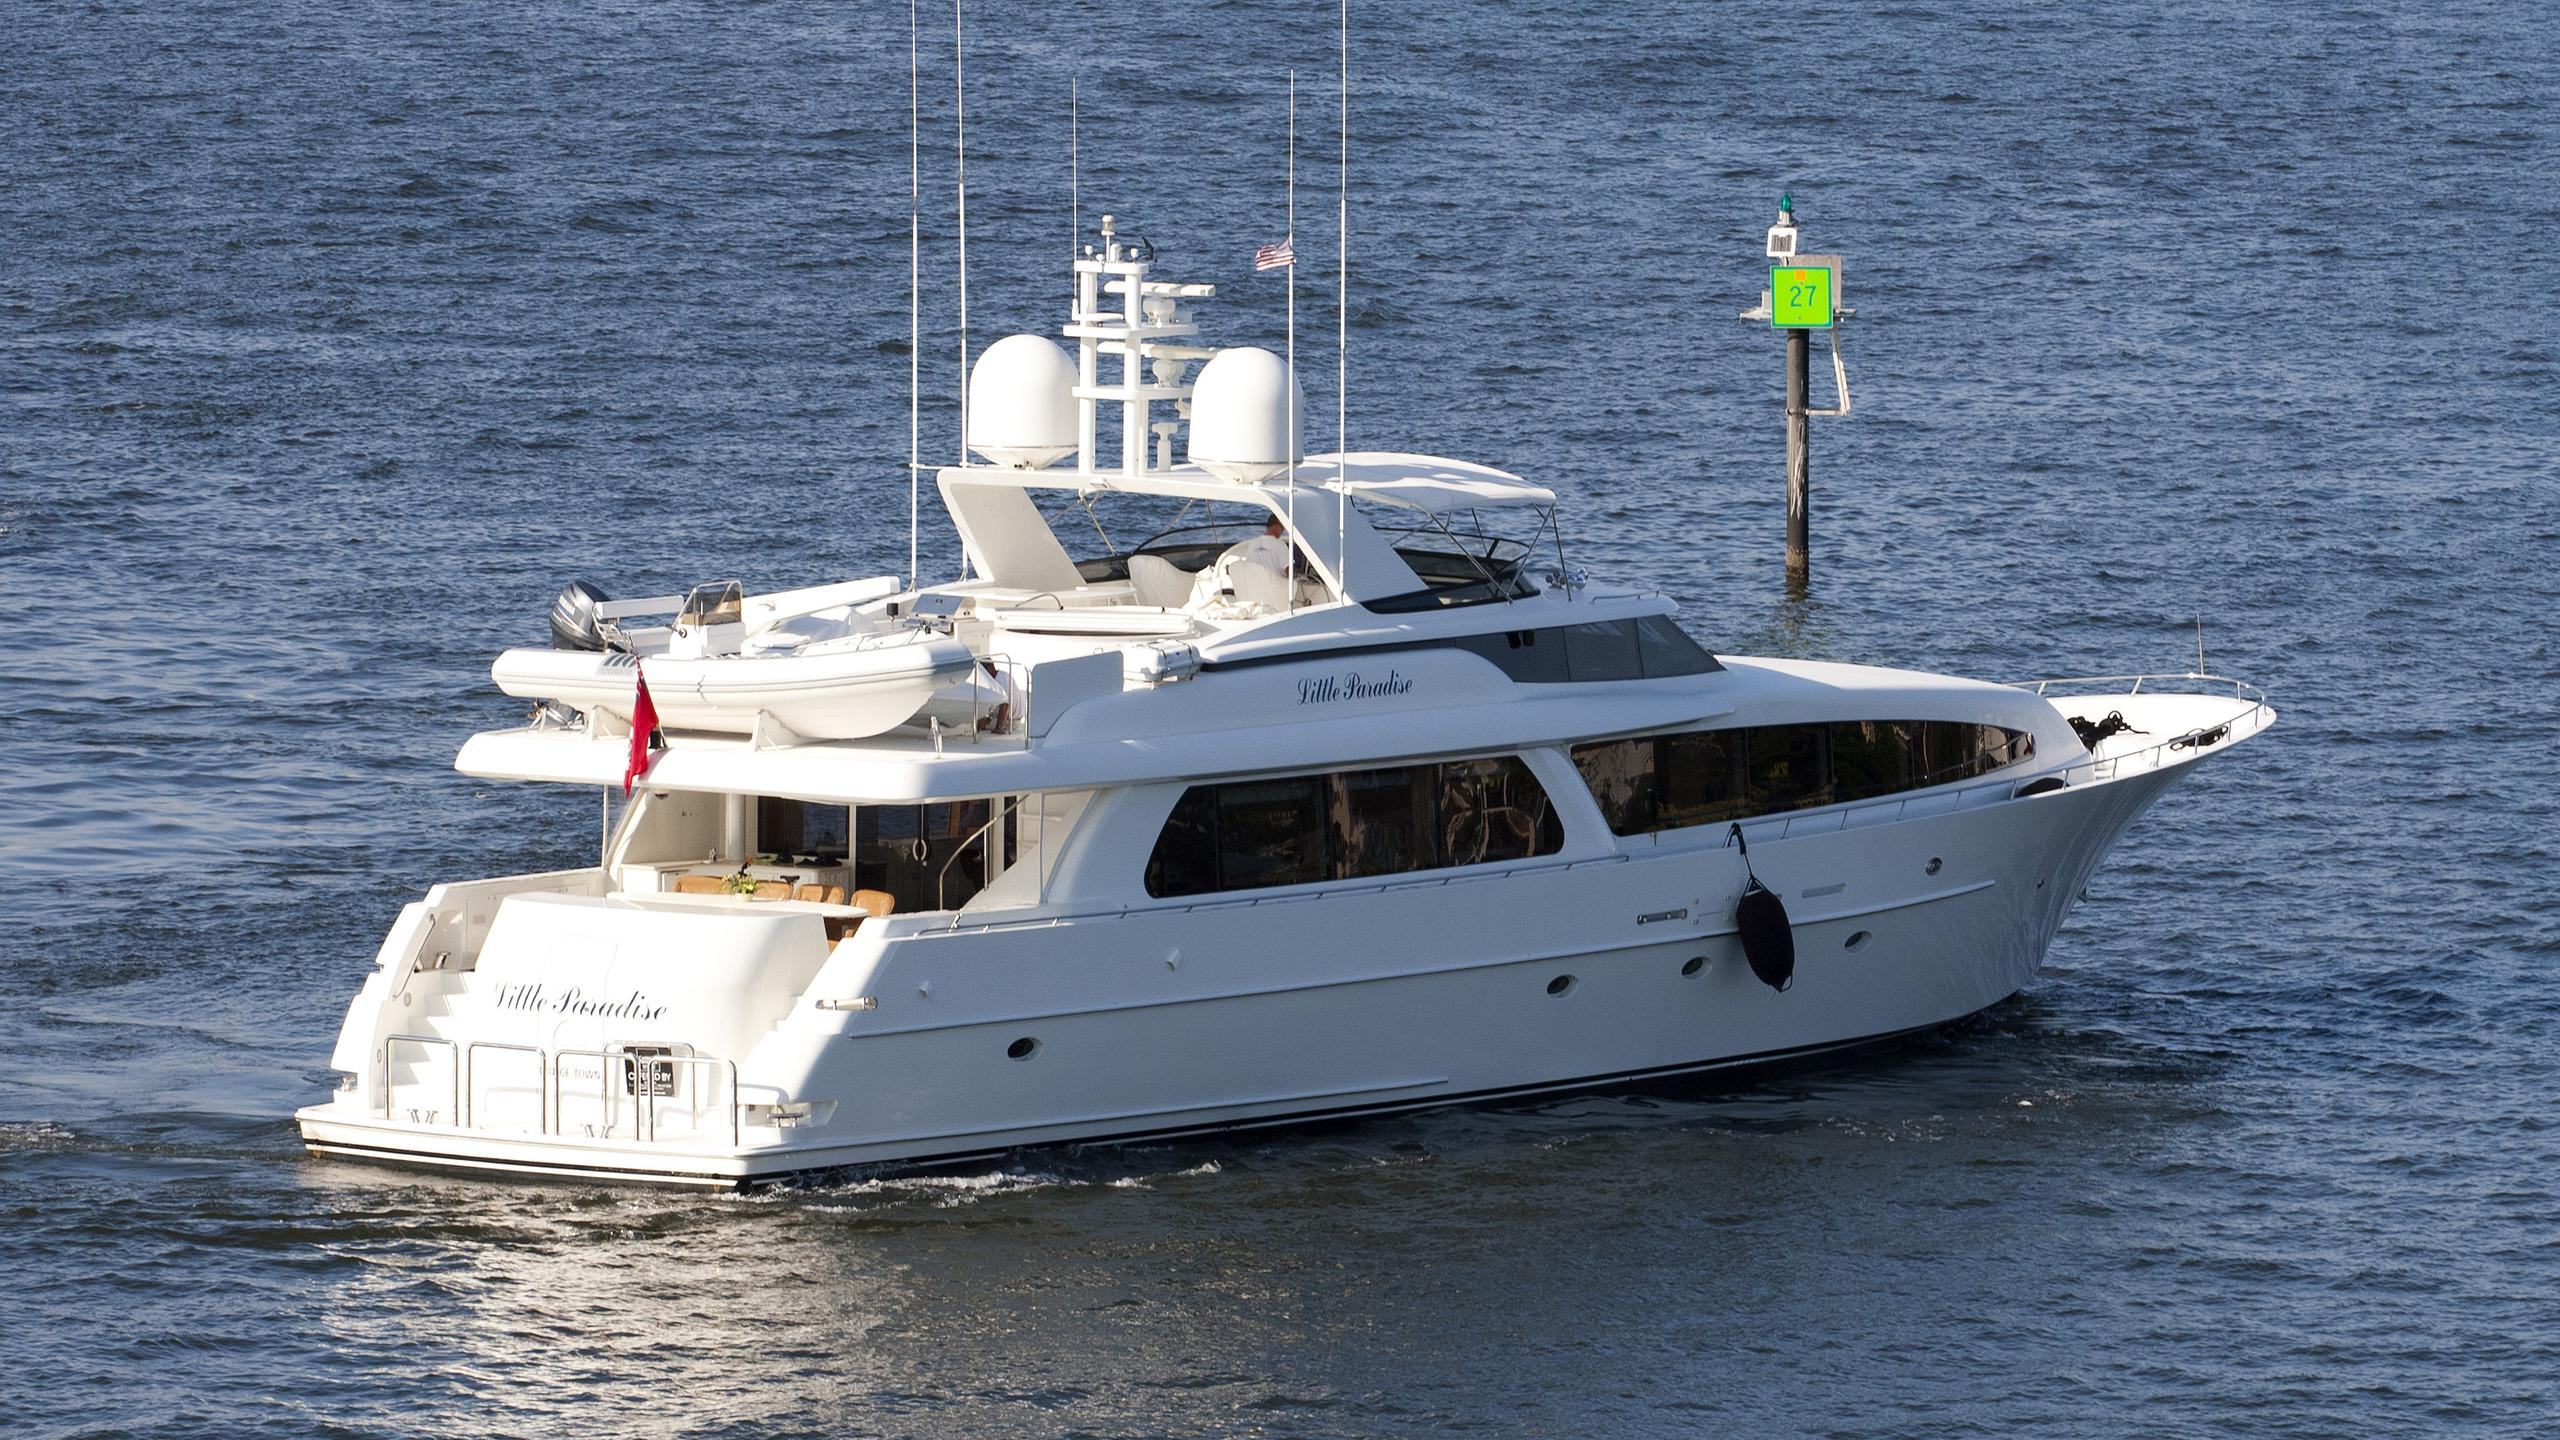 childs-play-motor-yacht-west-bay-shonship-1999-31m-back-profile